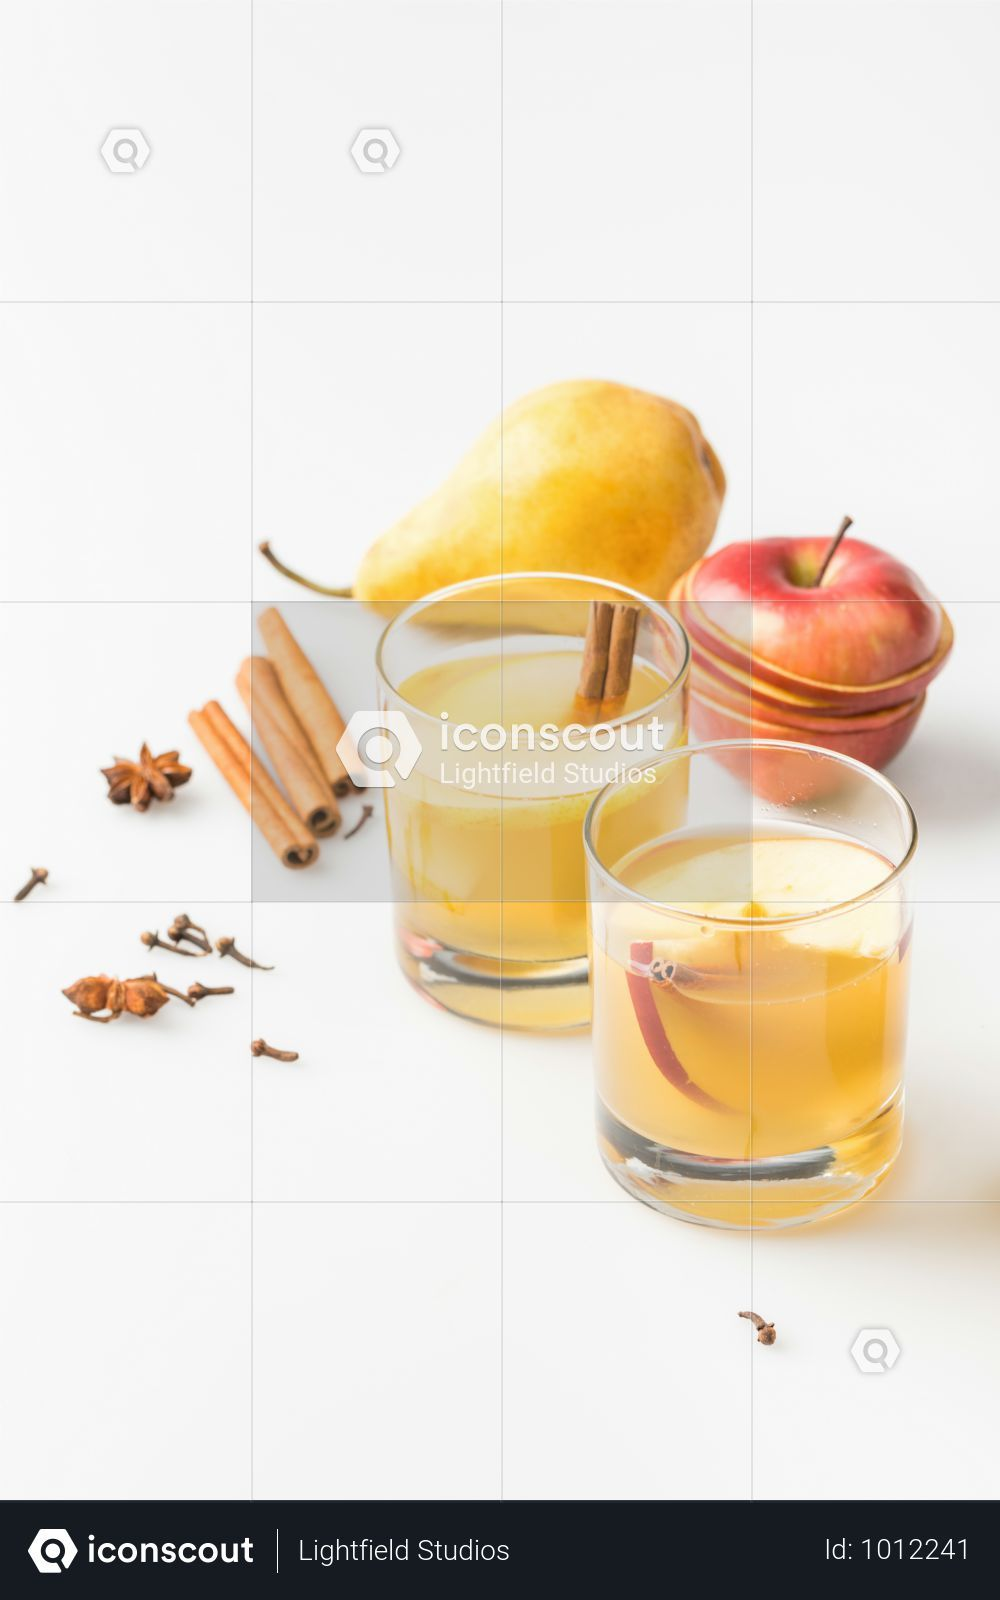 Premium Glasses Of Delicious Spiced Cider With Pear And Apple Photo Download In Png Jpg Format Spiced Cider Delicious Fruits Photos